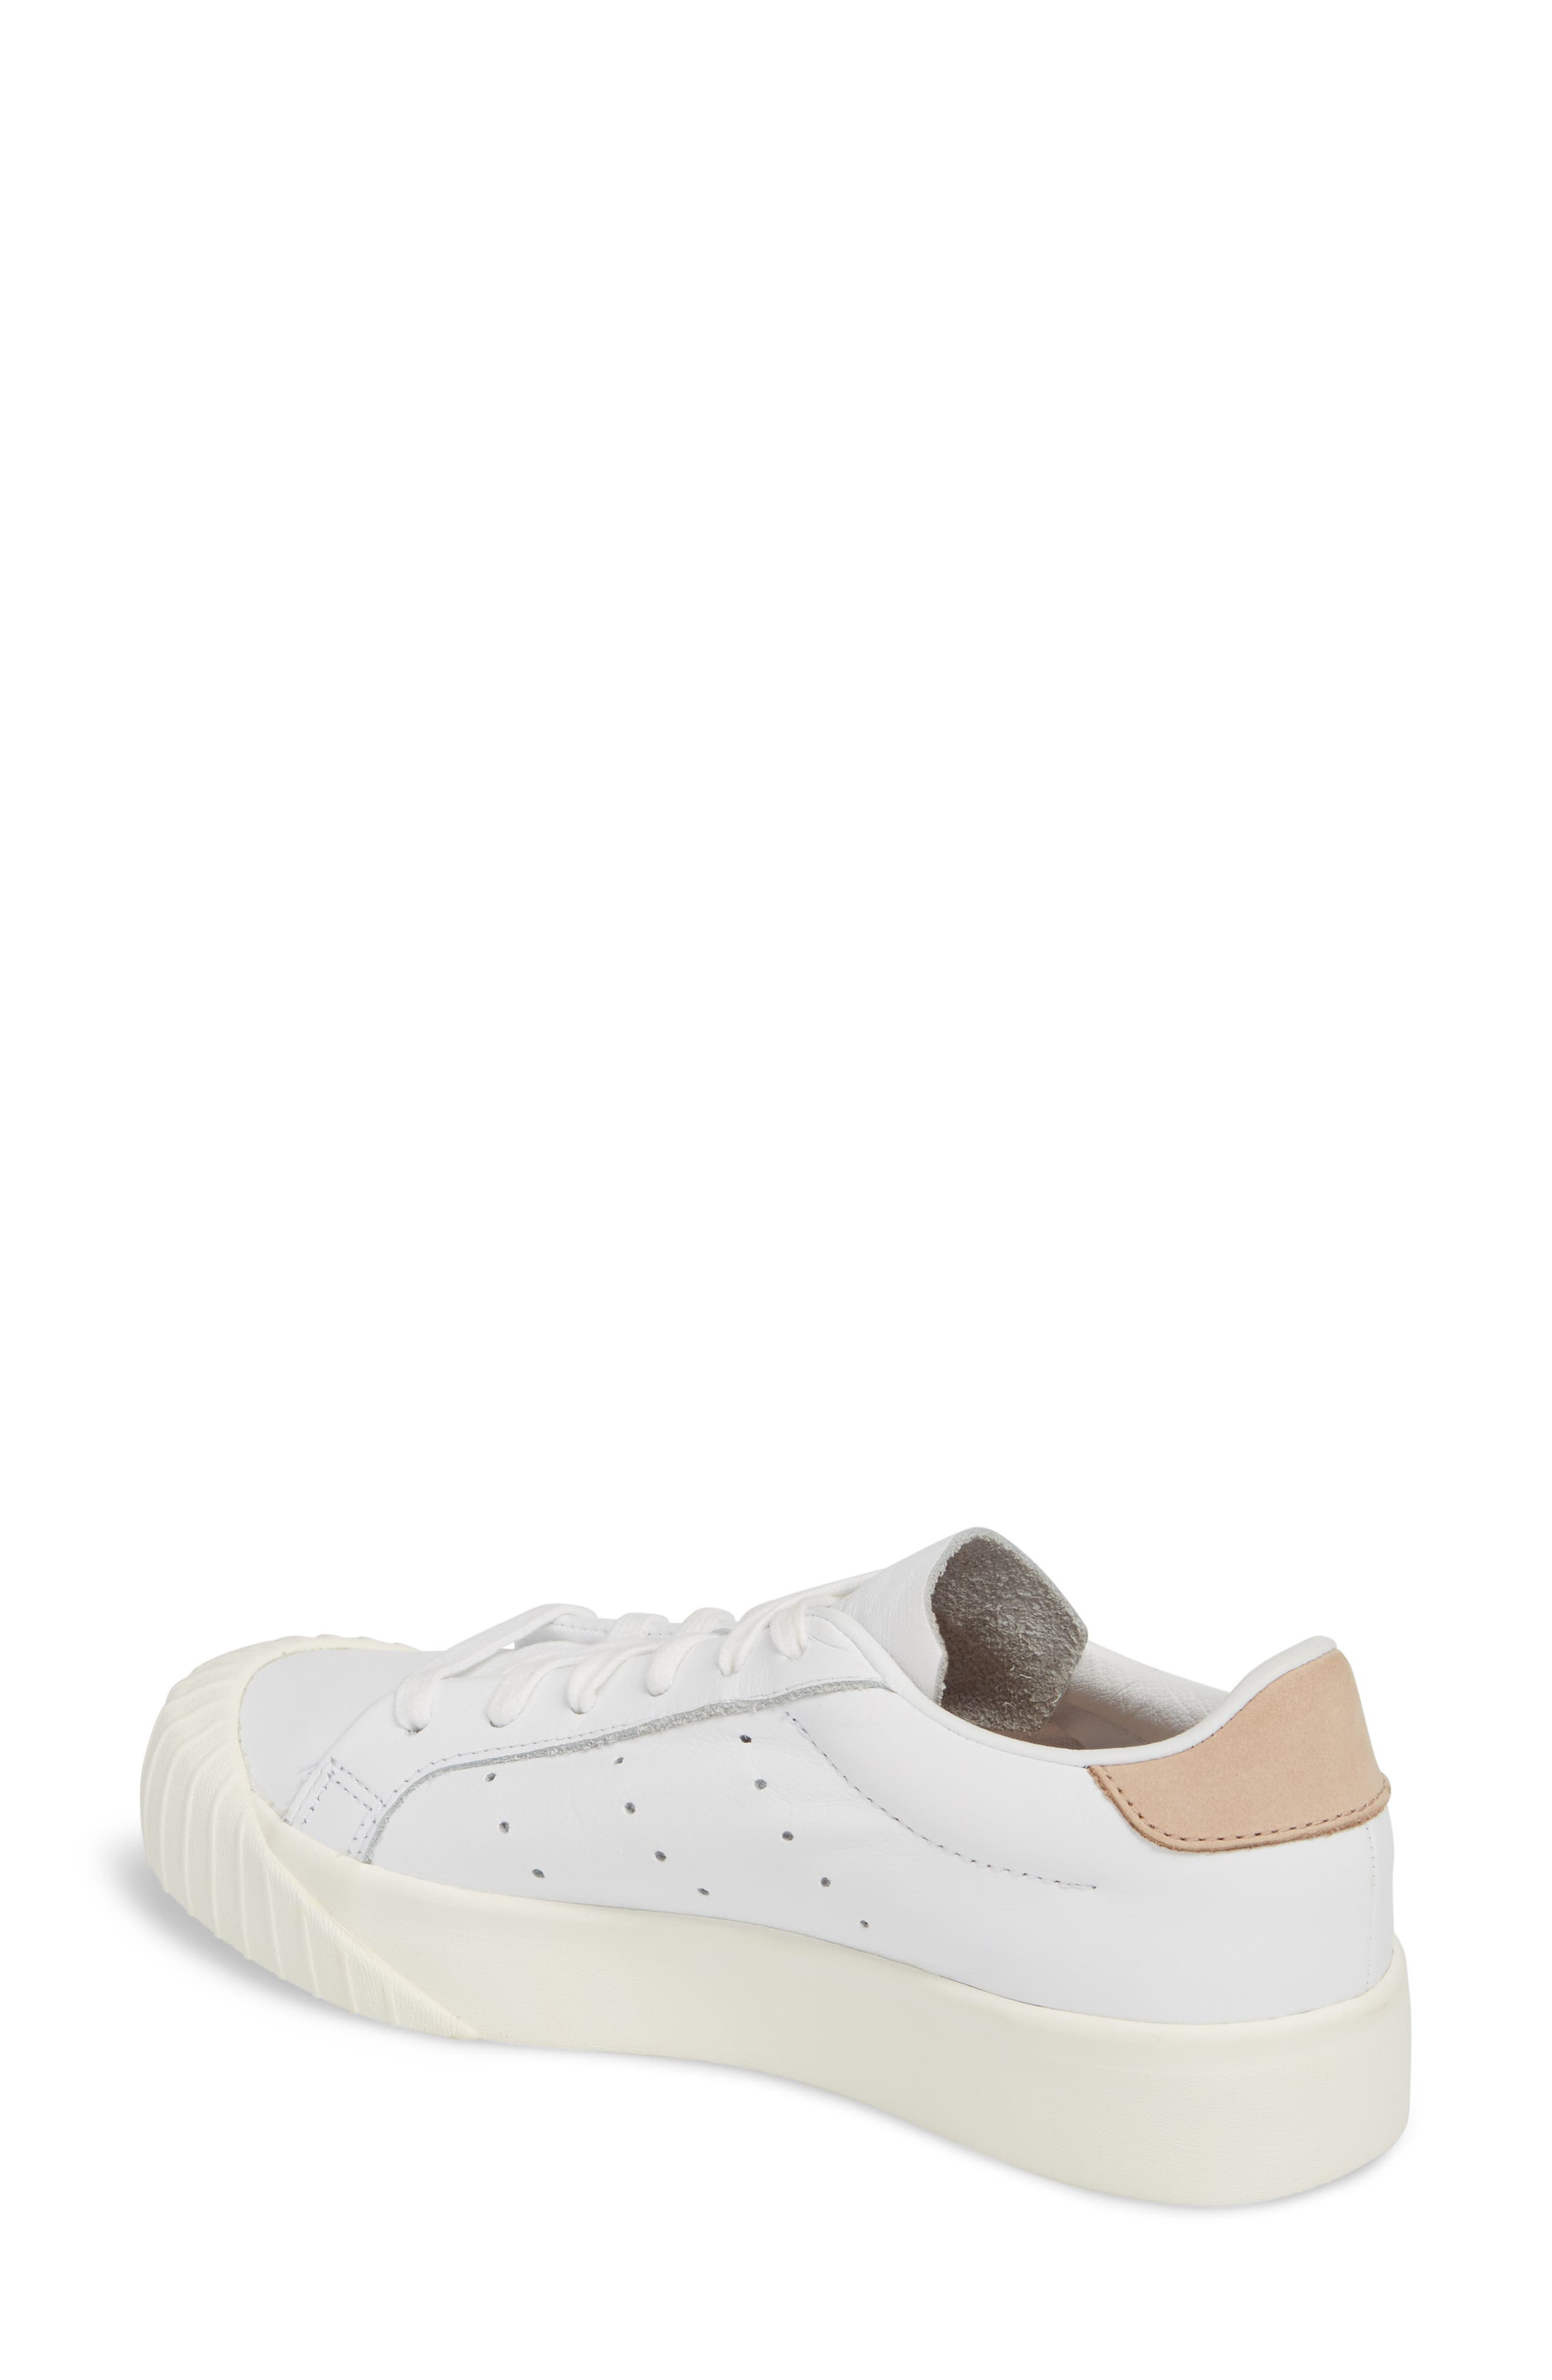 Everyn Perforated Low Top Sneaker,                             Alternate thumbnail 4, color,